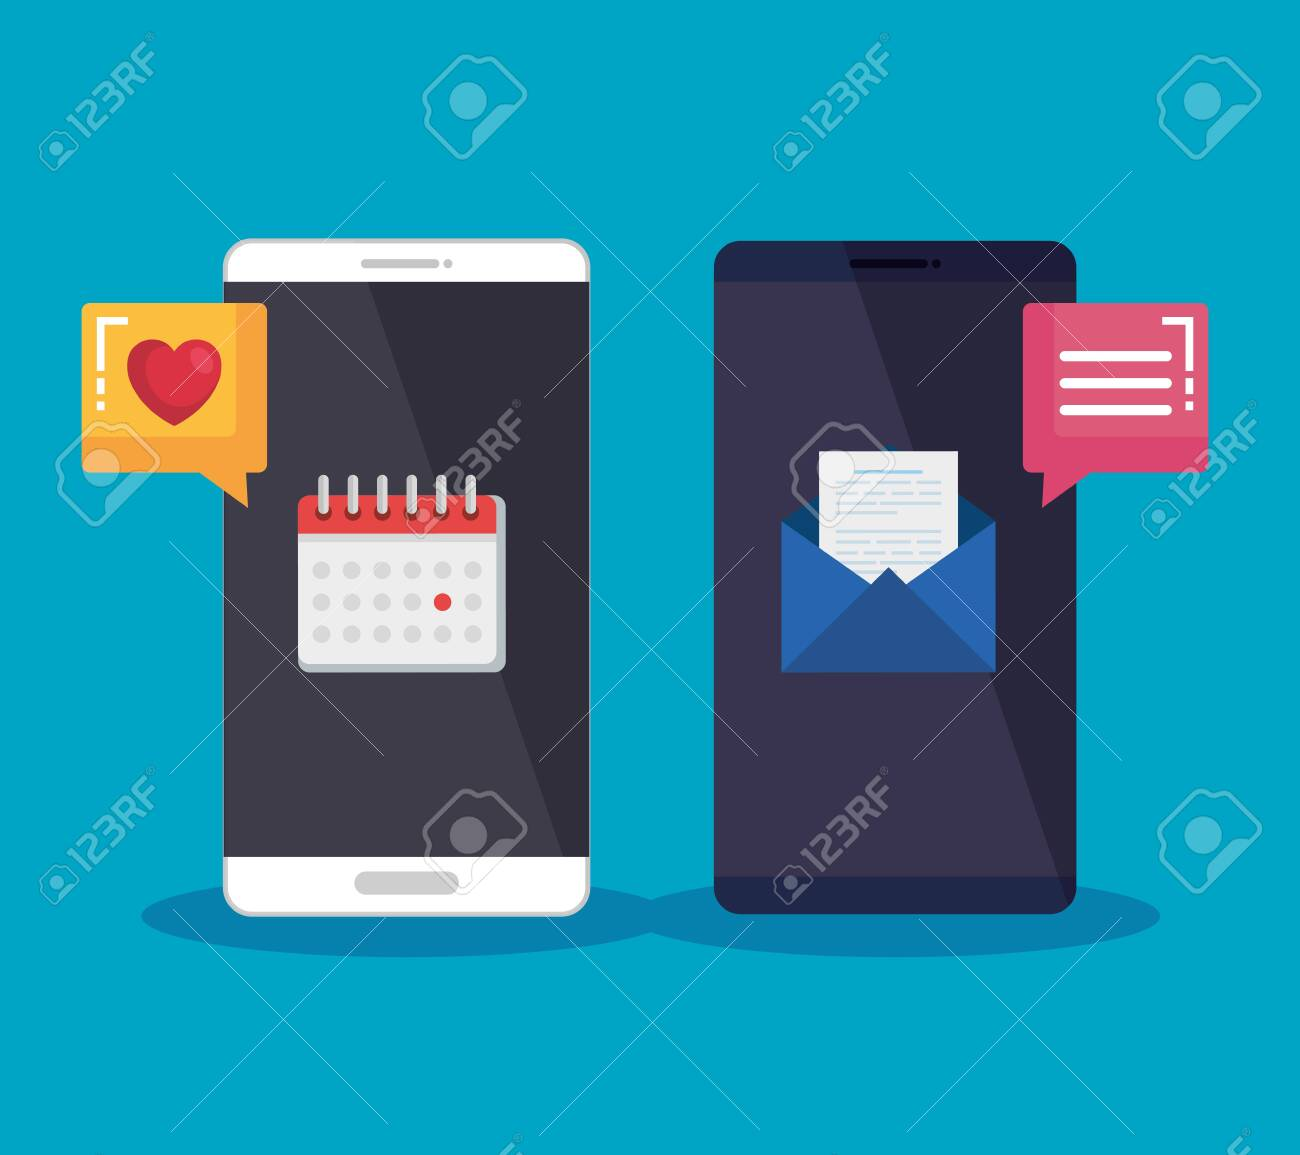 smartphones technology with chat bubble and letter media vector illustration - 129483785